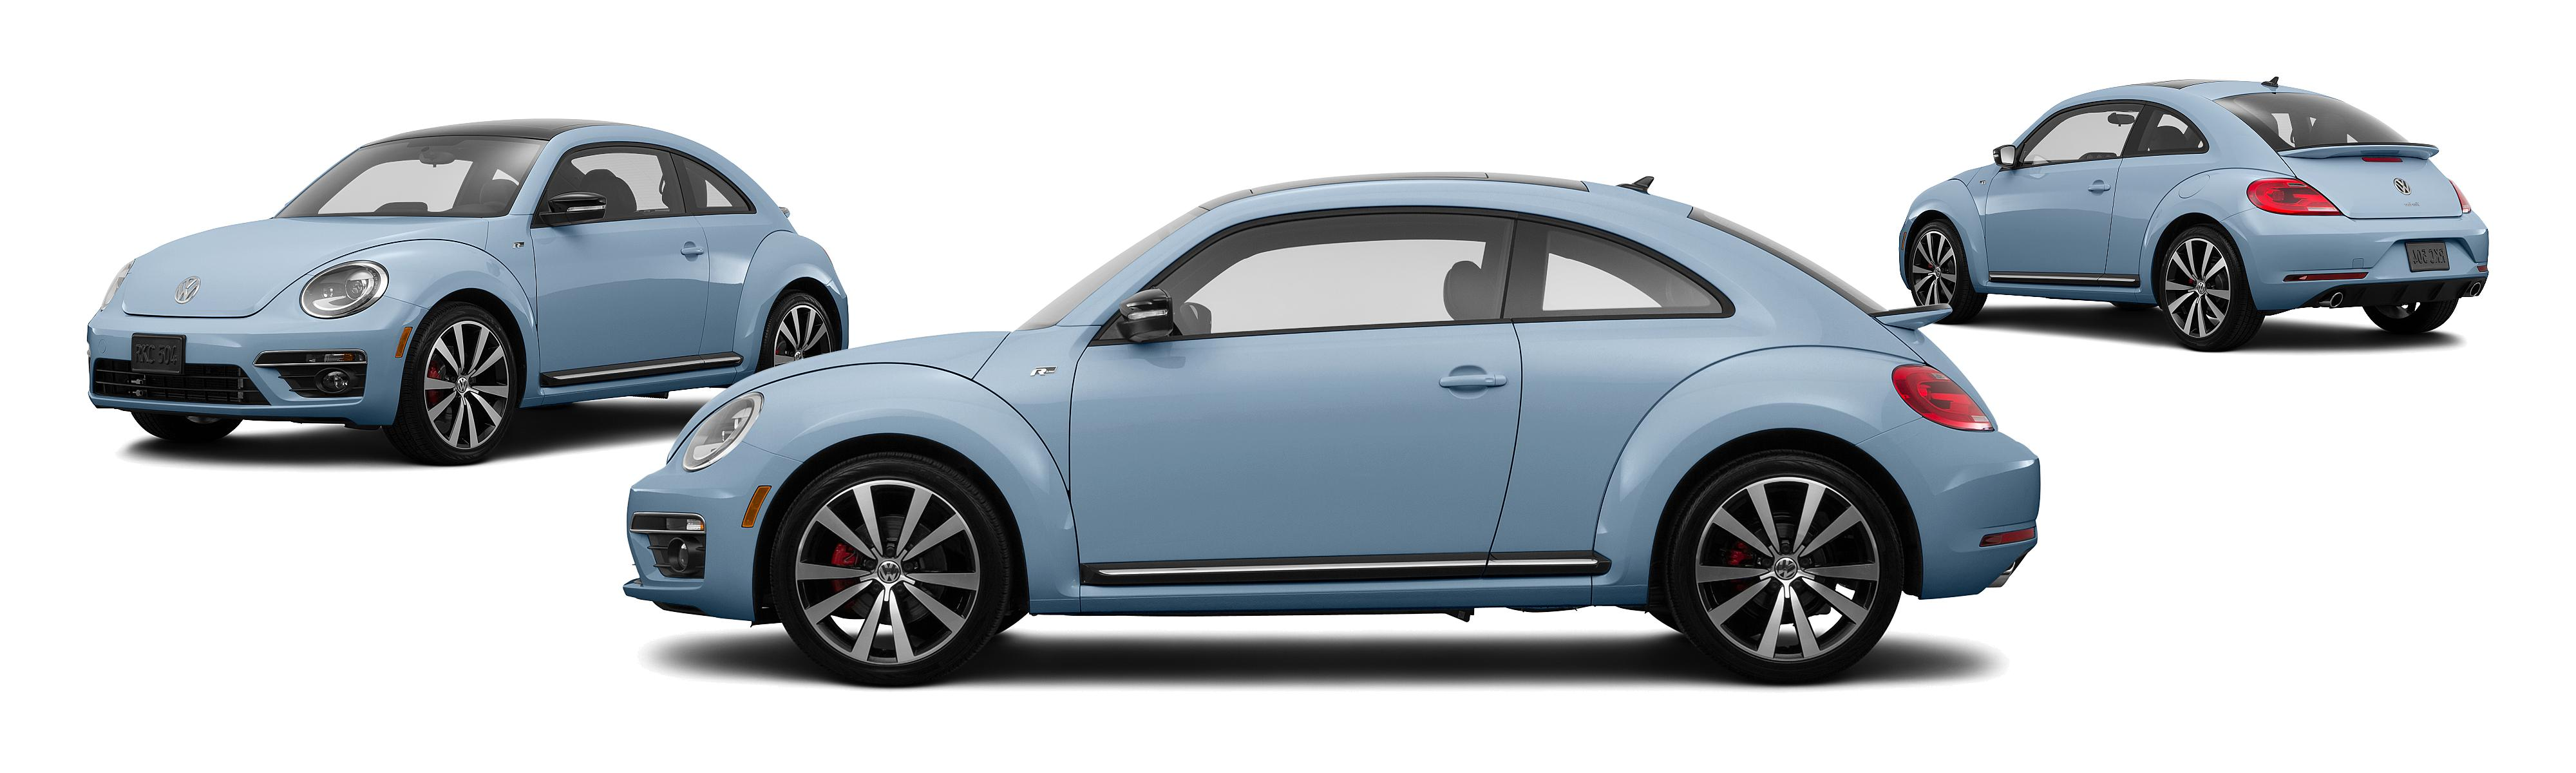 in beetle car dsc imported new indian homologation to for scene volkswagen india price launch forum